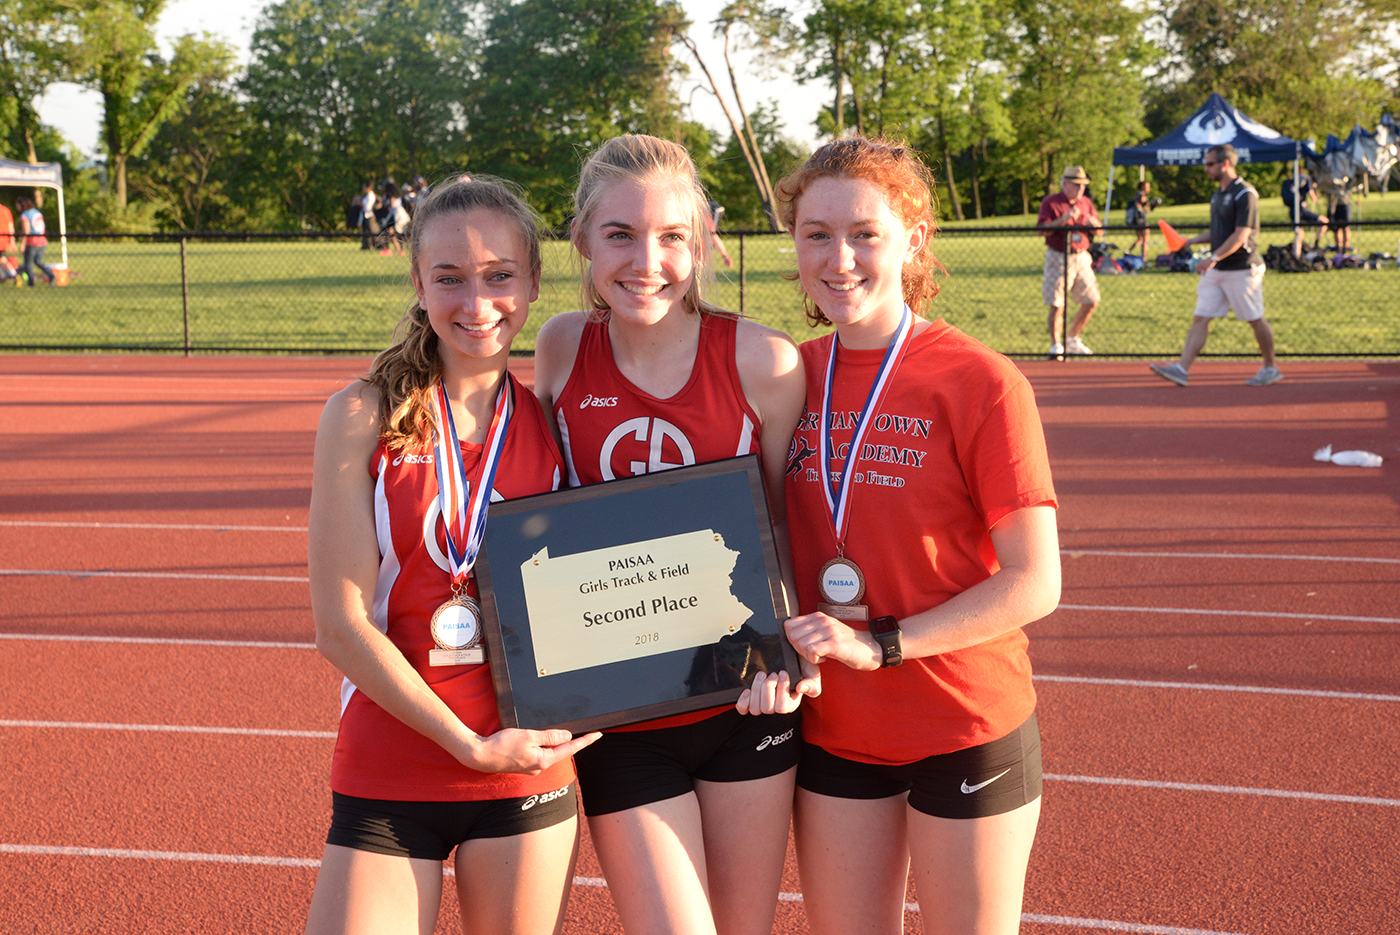 Girls Track & Field: GA Finishes Second at PAISAA Championship